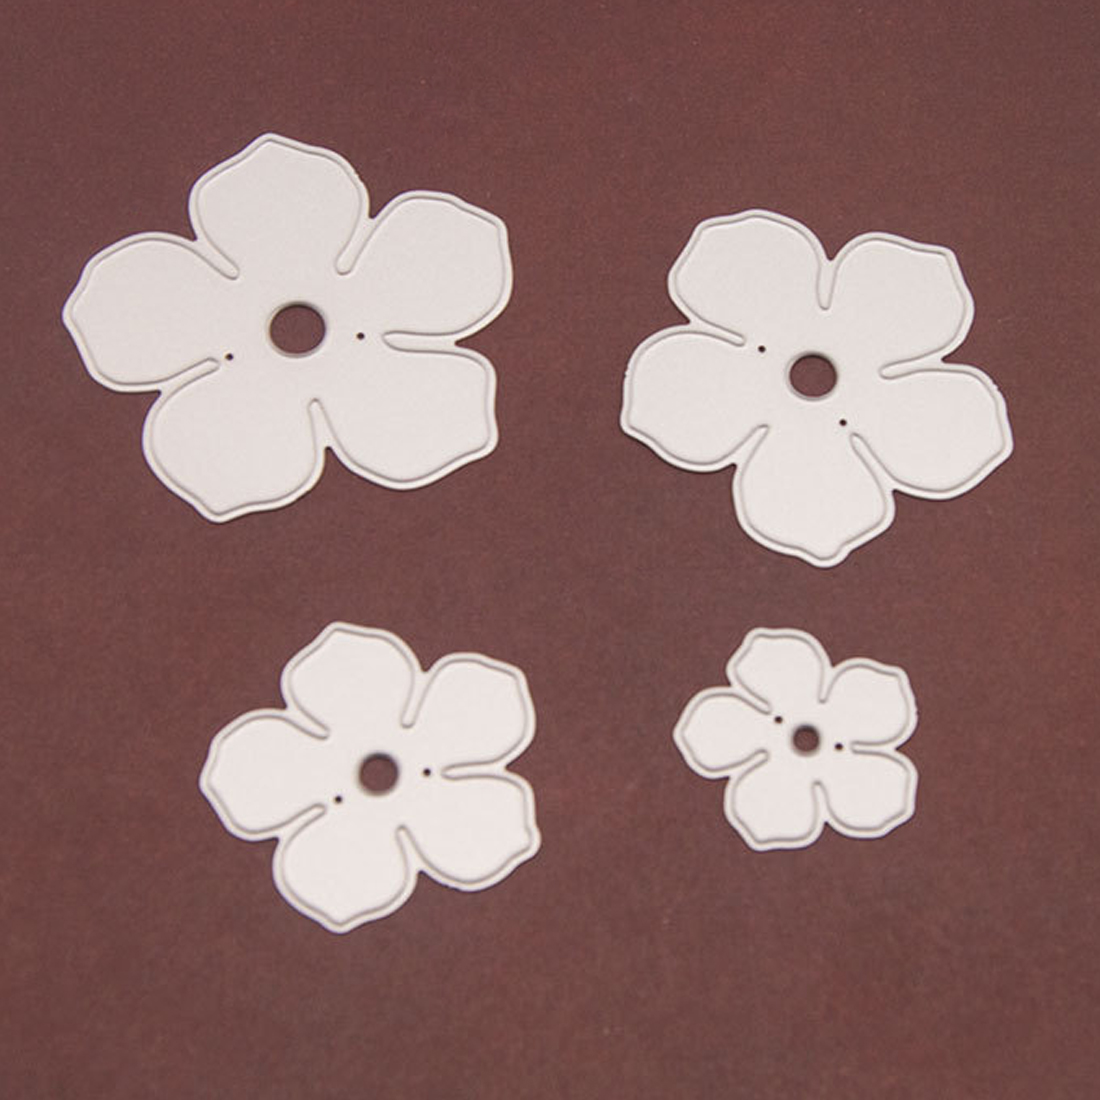 buy paper roses template and get free shipping on aliexpress com